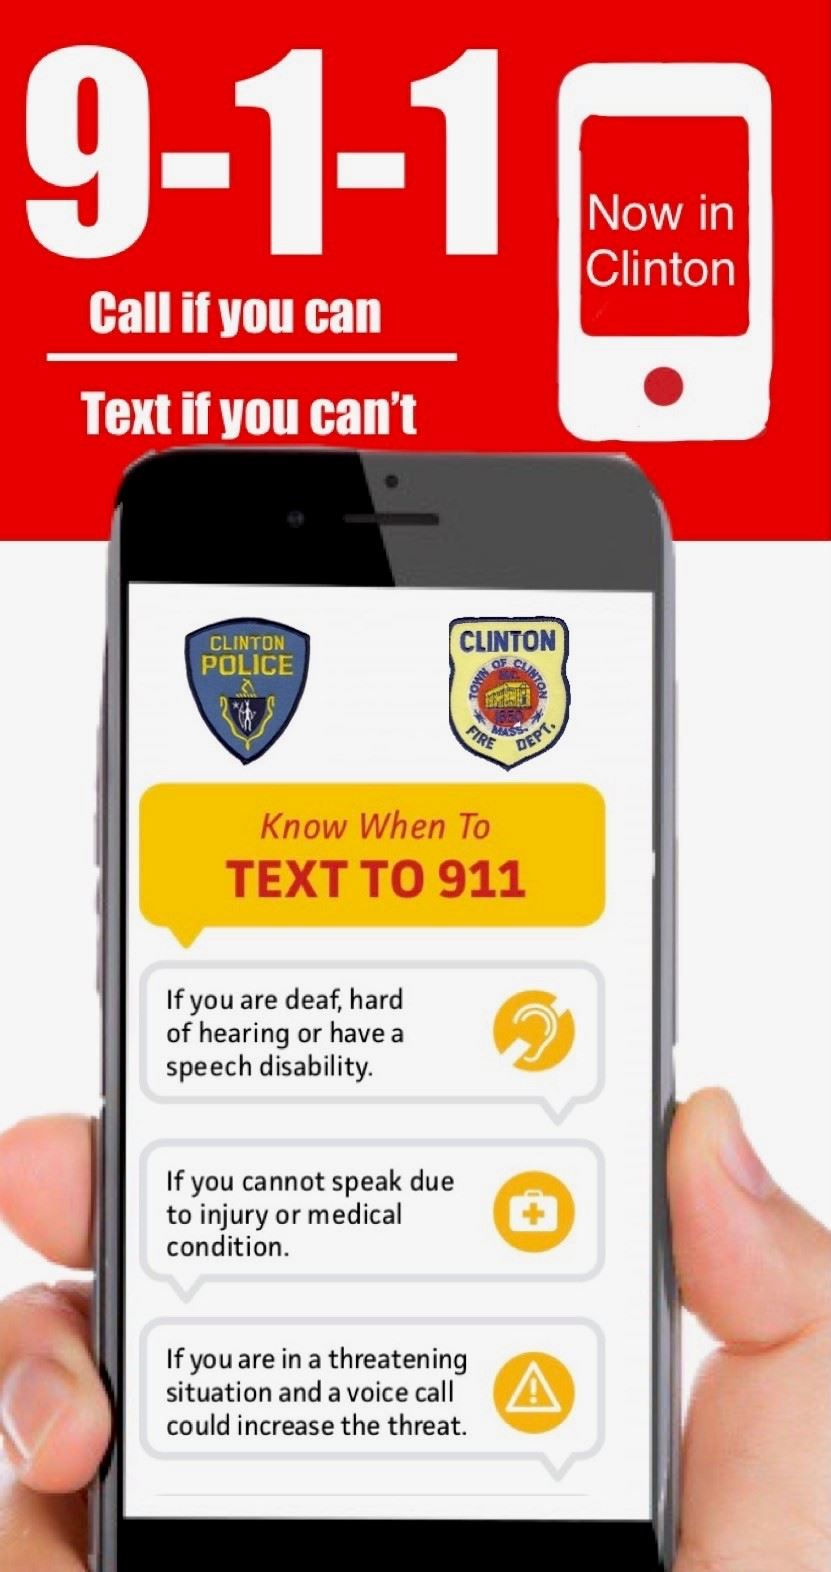 Text to 911, call if you can text if you can't